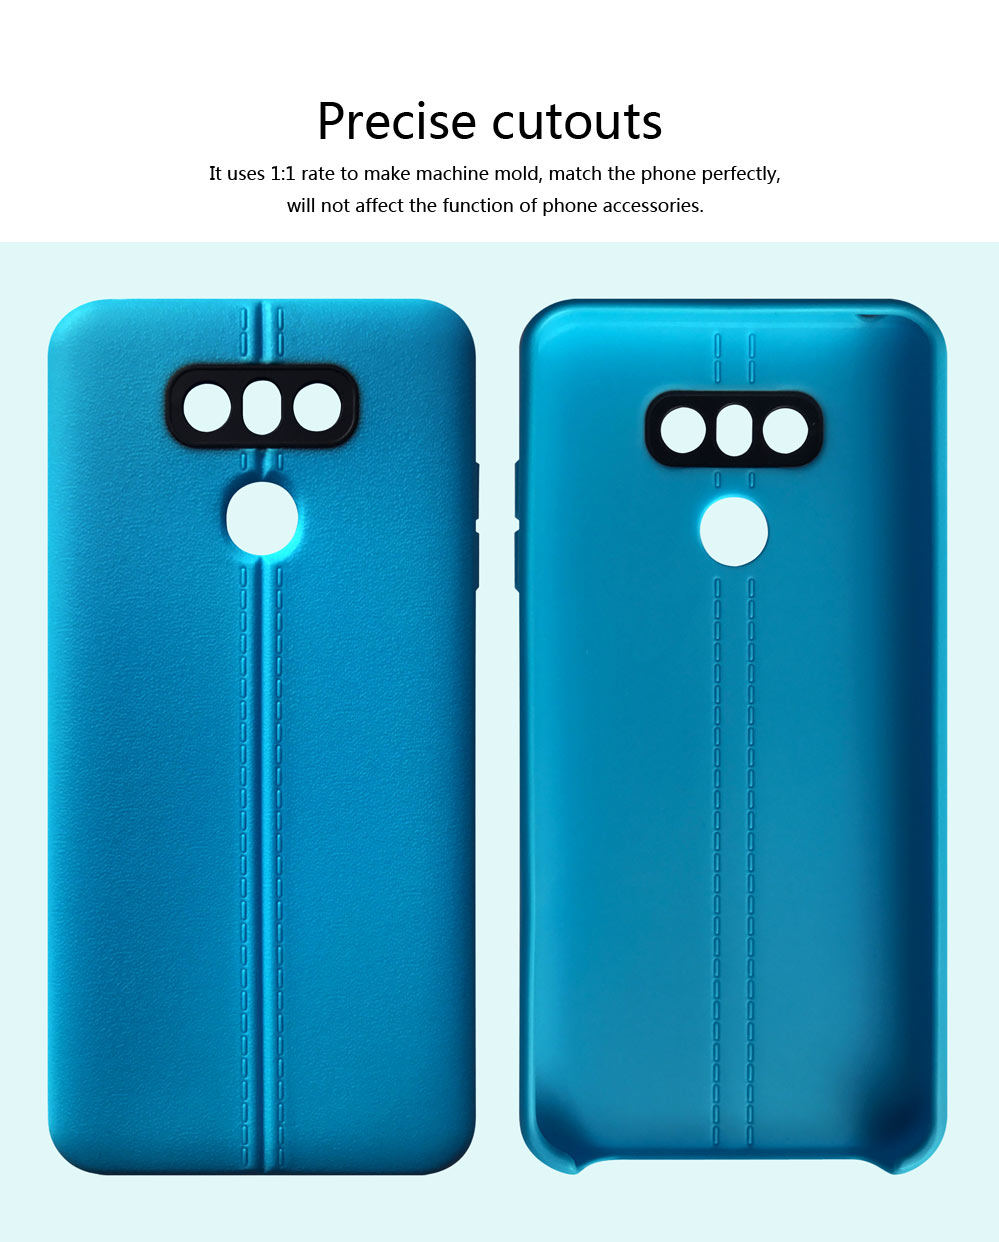 Double Line Phone Protector Case for LG G4 G6, Solid Color Anti-Fall Phone Cover, Minimalist TPU Back Cover 3